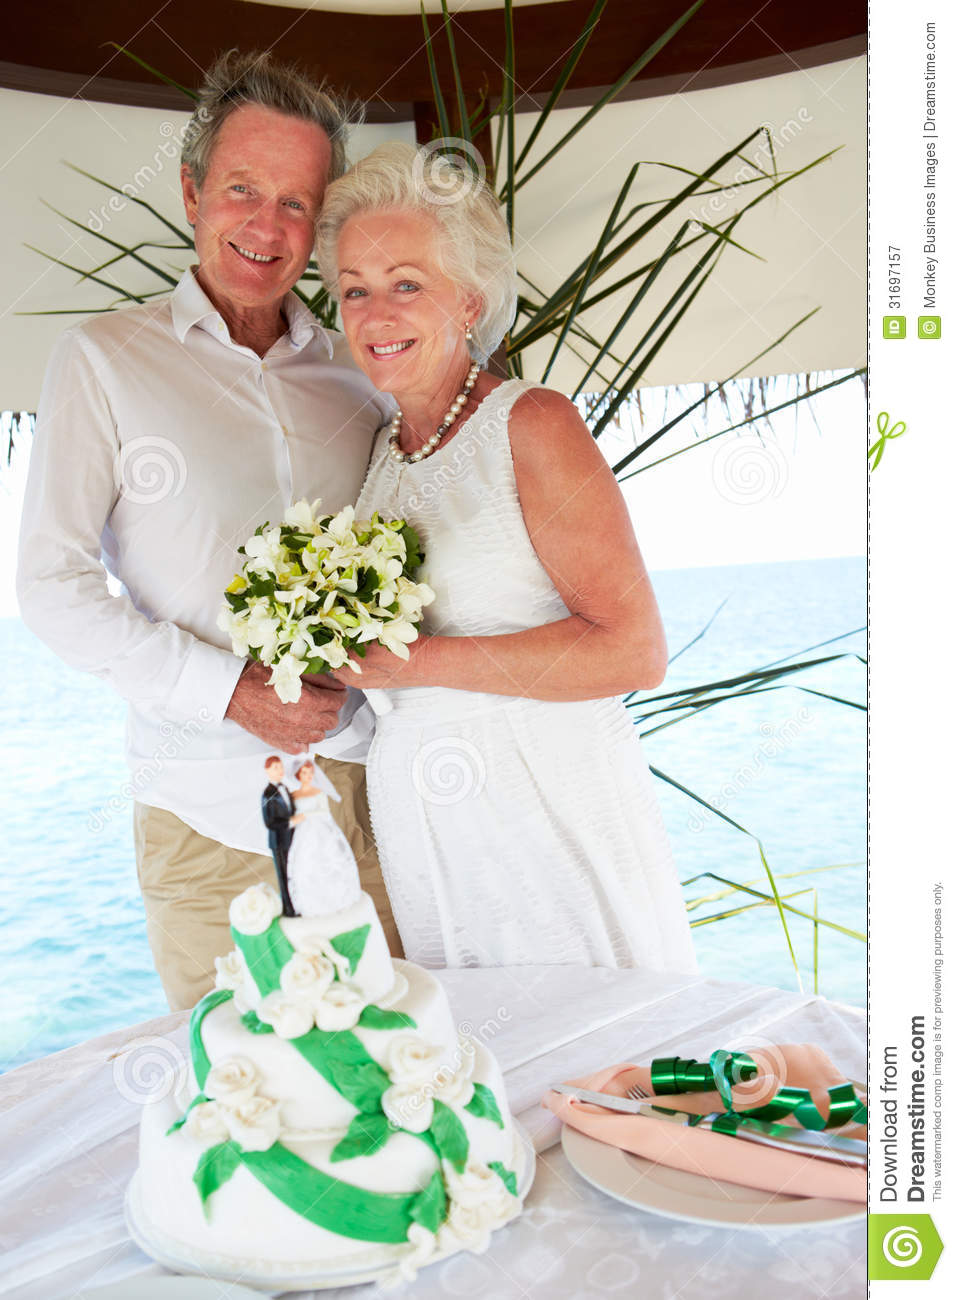 Senior Beach Wedding Ceremony With Cake In Foreground